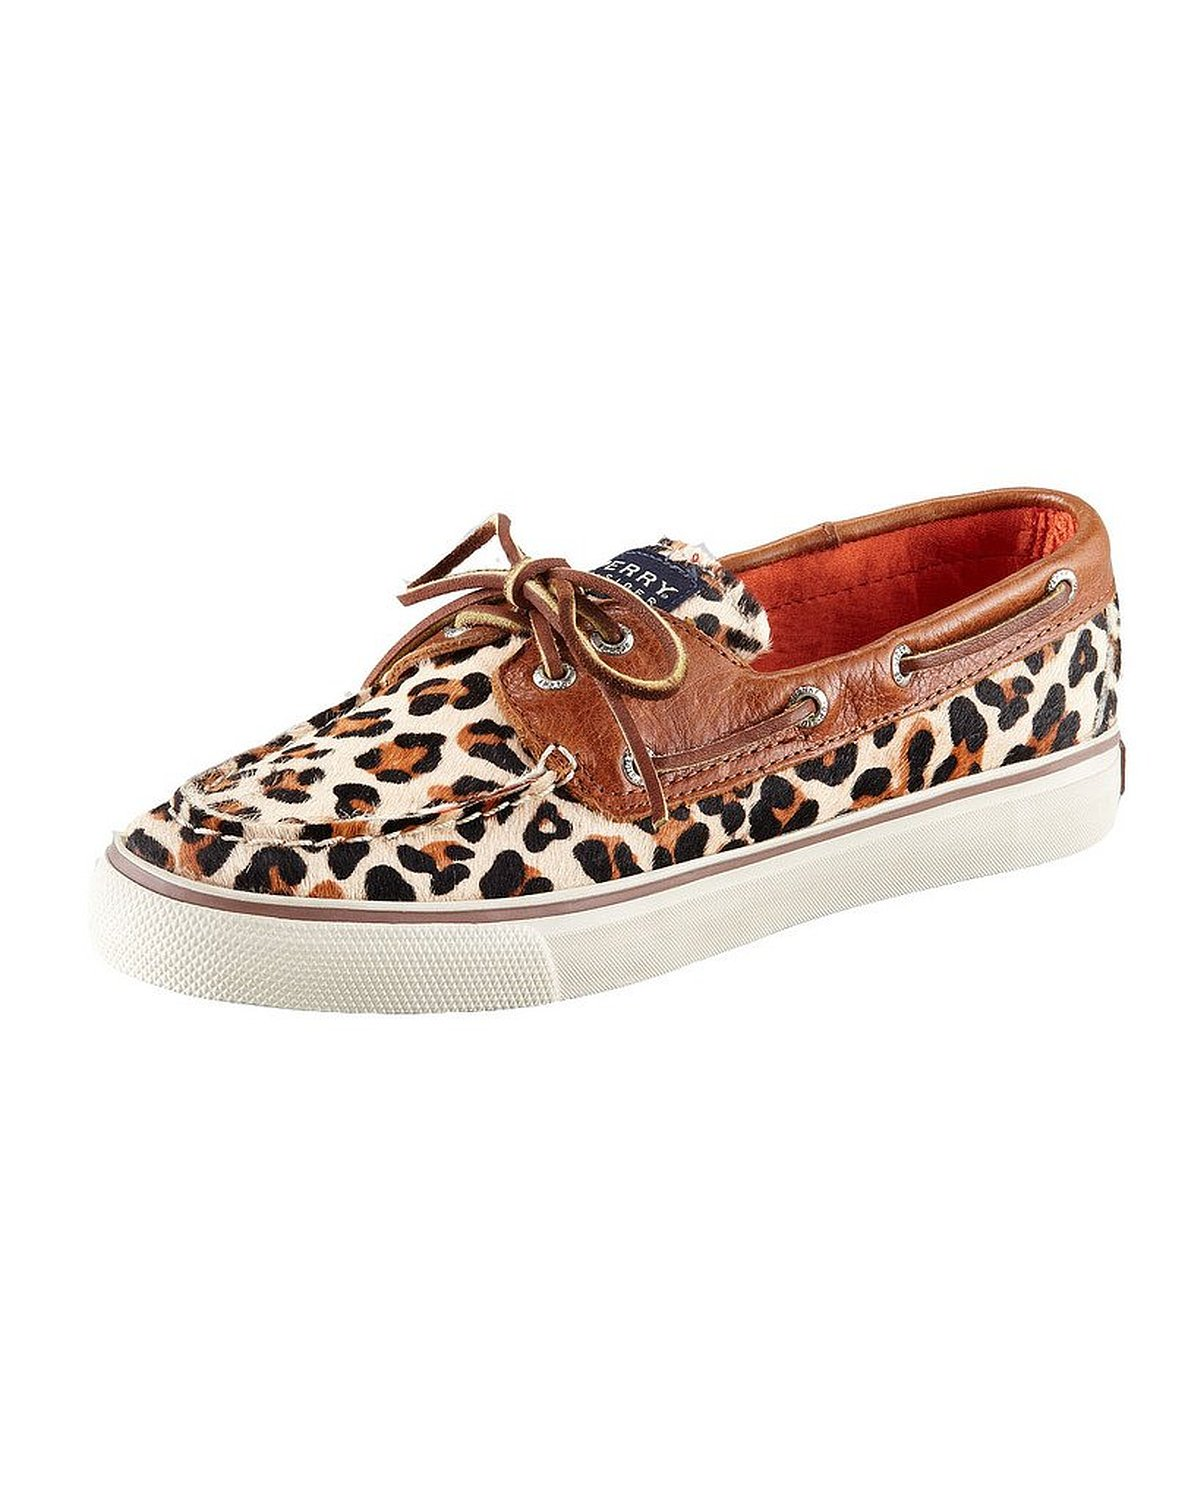 eef7072985 Get Quotations · Sperry Top-Sider Bahama Leopard Pony Womens Leopard Pony Boat  Shoes